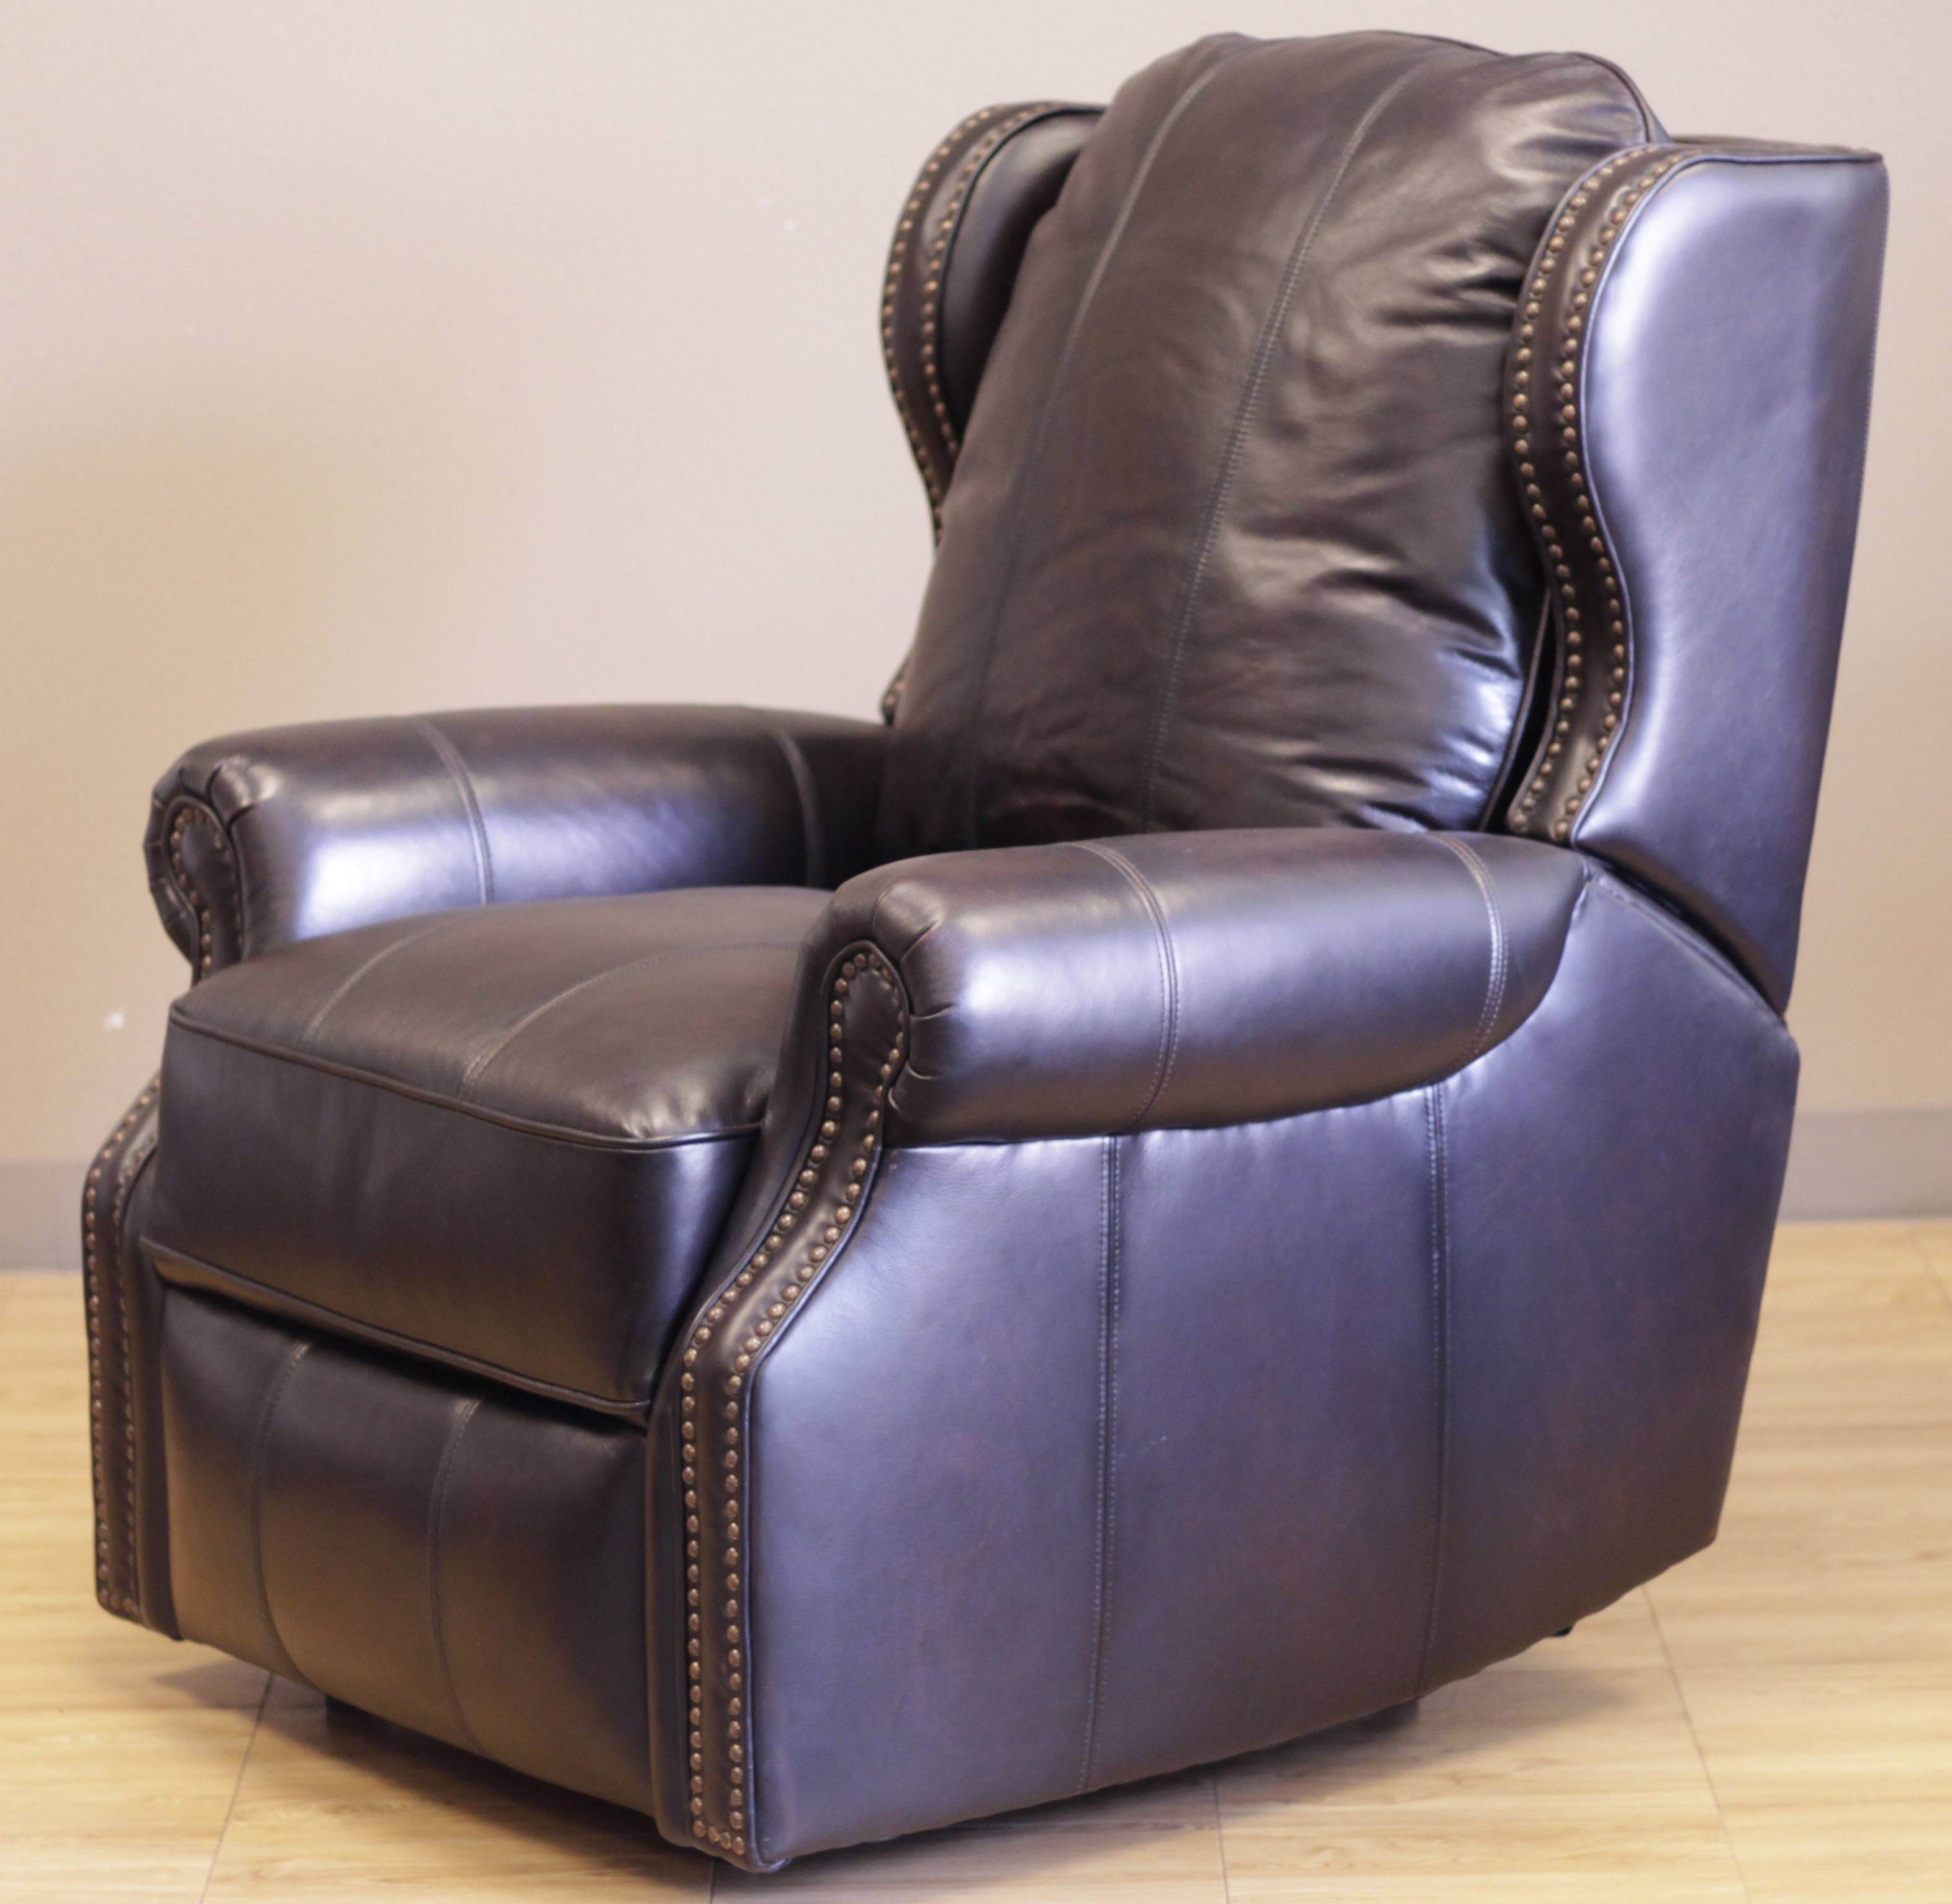 Barcalounger Bristol Ii Wall Hugger Recliner Chair - Leather within Barcalounger Sofas (Image 5 of 15)